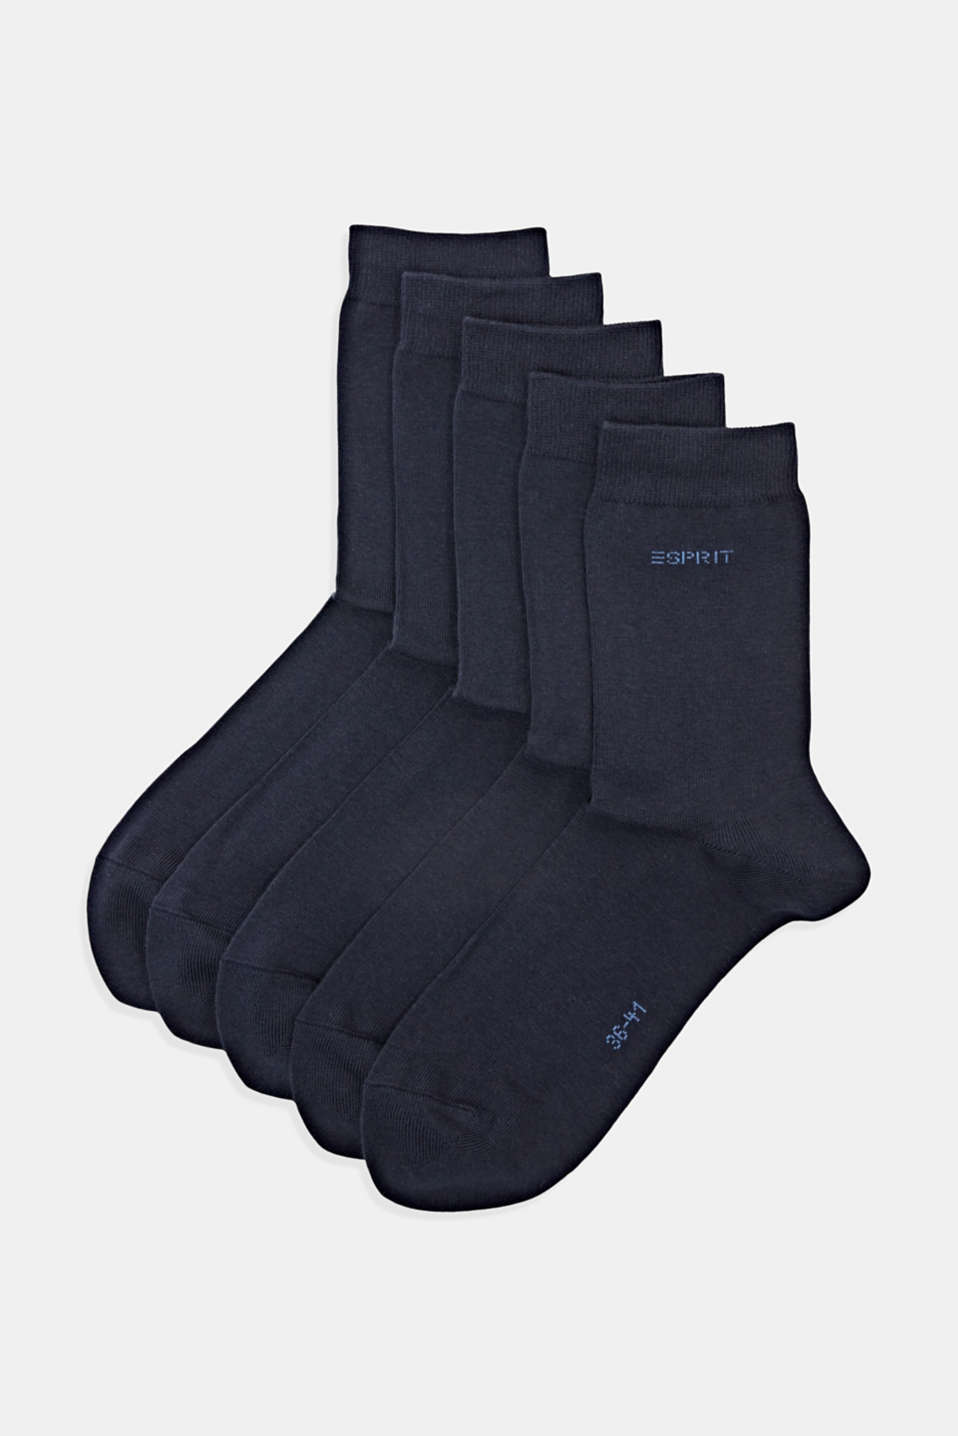 Esprit - Pack de cinco pares de calcetines